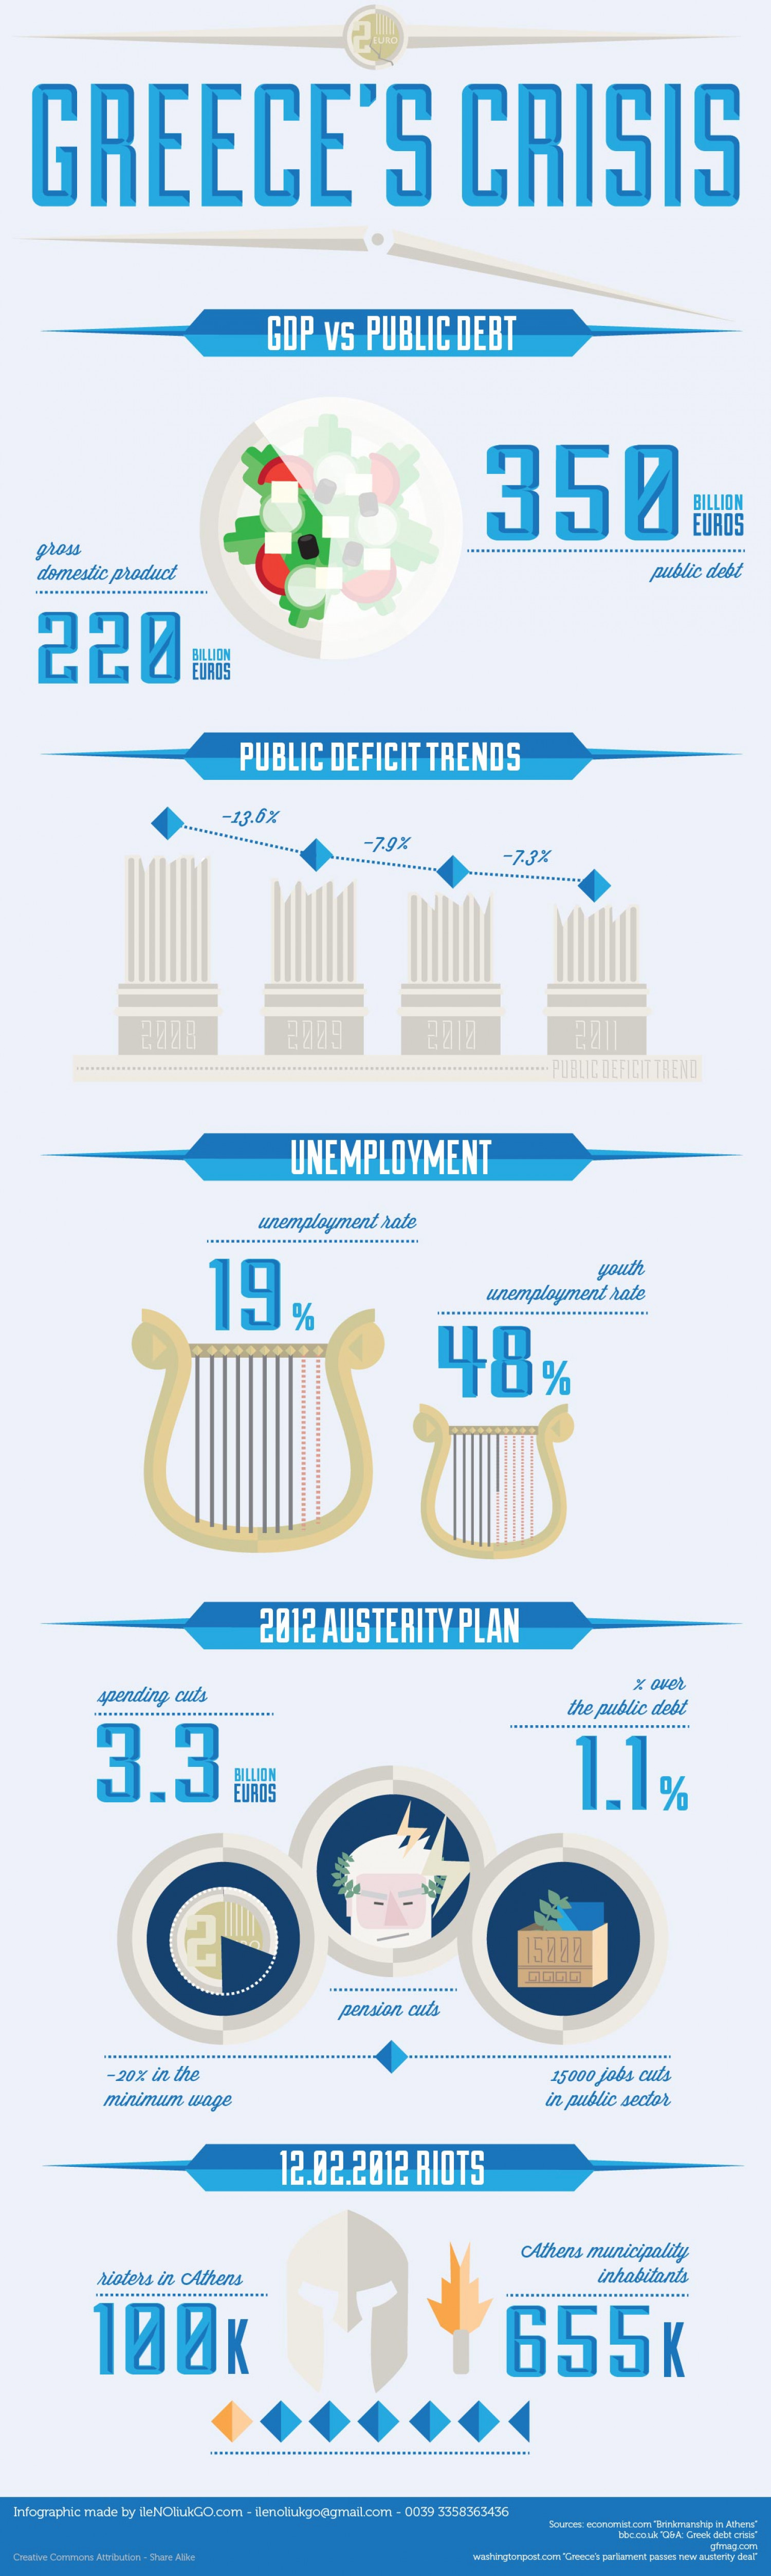 Greece's crisis Infographic